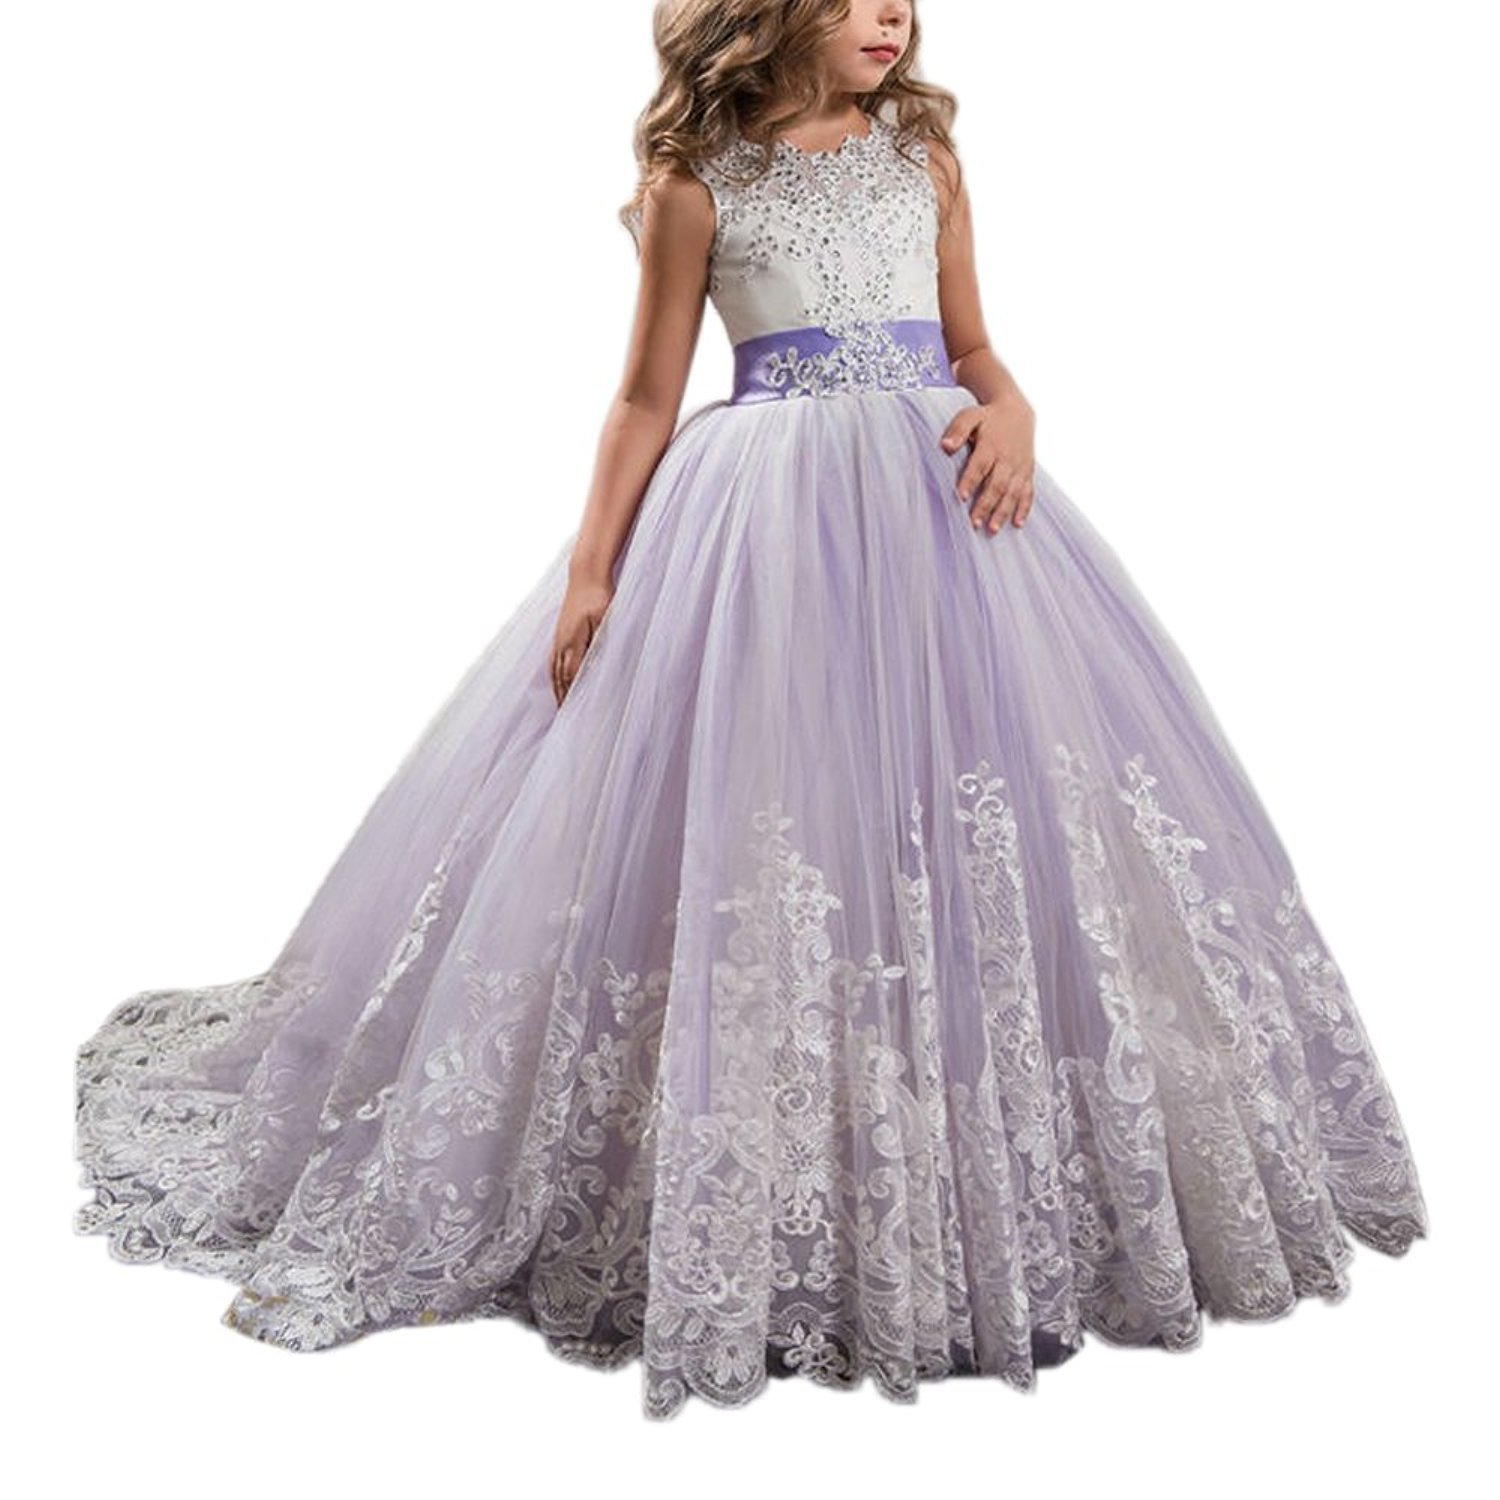 d4e9c07d66f ☺FEATURES Ball Gown Lace Tulle Beaded Sleeveless Floor Length Train  ☺SUITABLE FOR birthday party